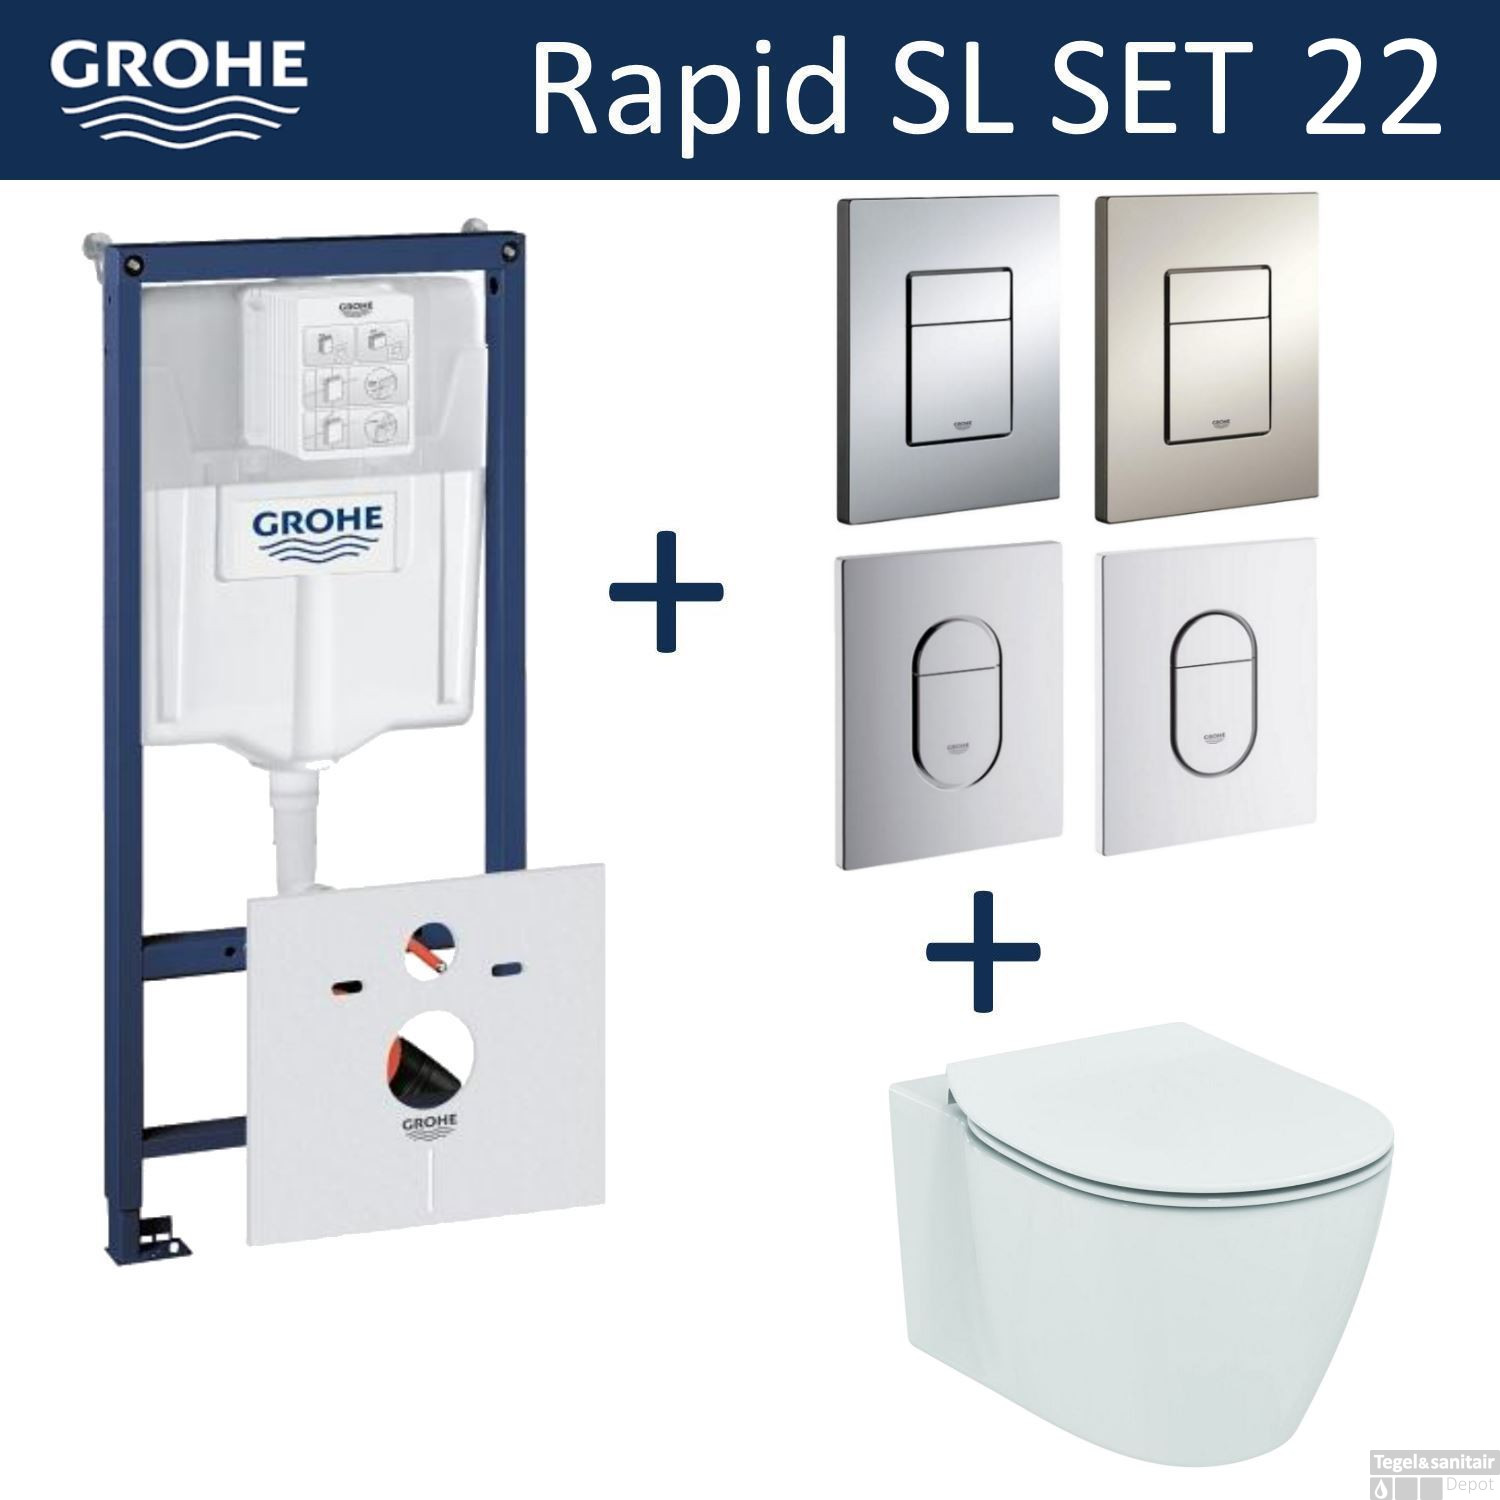 grohe rapid sl toiletset set22 ideal standard connect aquablade met grohe arena of skate drukplaat. Black Bedroom Furniture Sets. Home Design Ideas